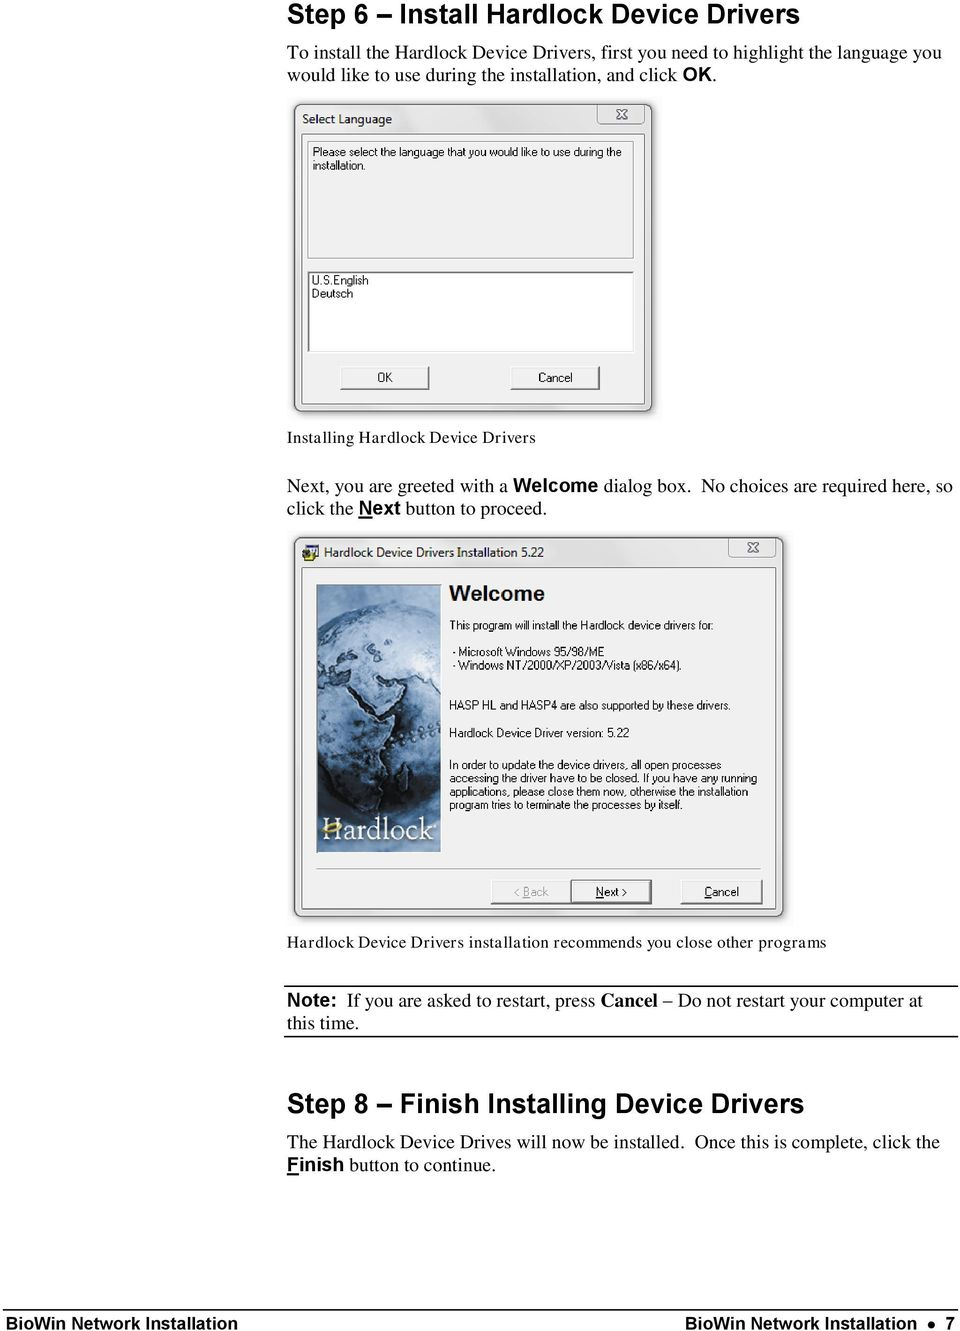 Hardlock Device Drivers installation recommends you close other programs Note: If you are asked to restart, press Cancel Do not restart your computer at this time.